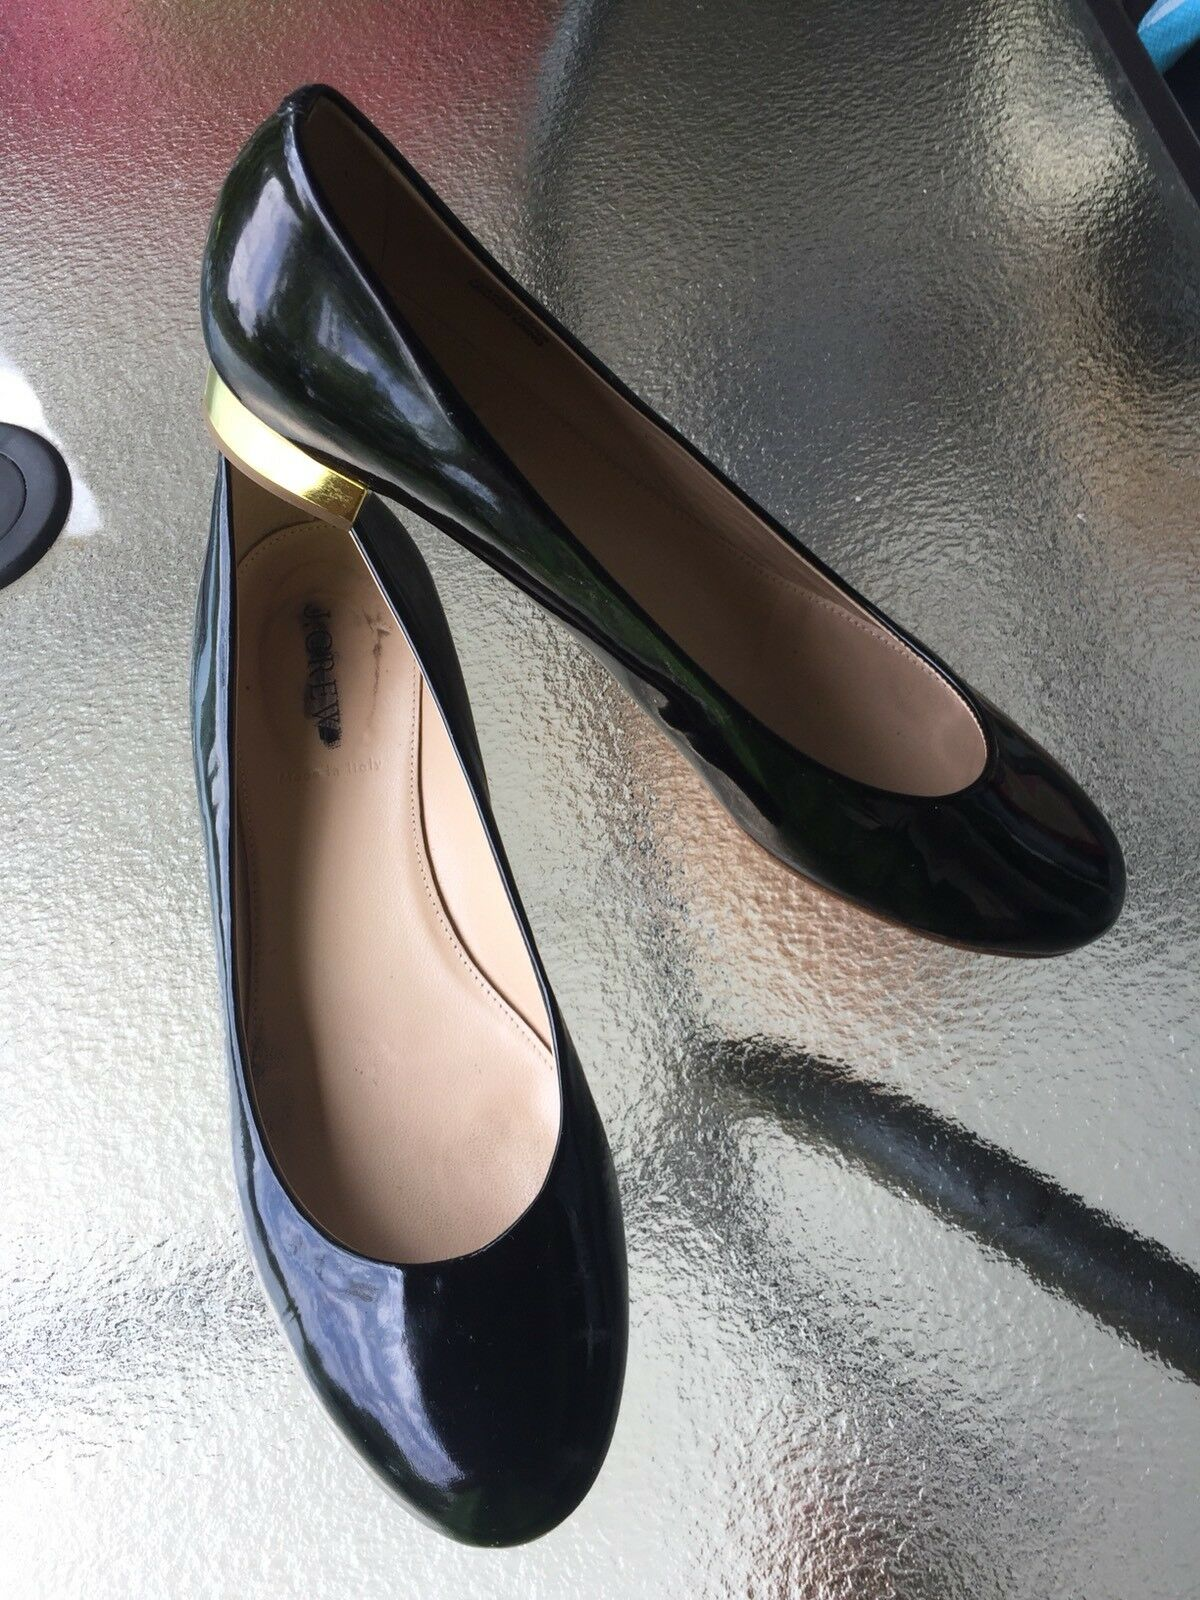 J.Crew BLACK PATENT LEATHER  FLATS US SIZE 8,5M MADE IN ITALY